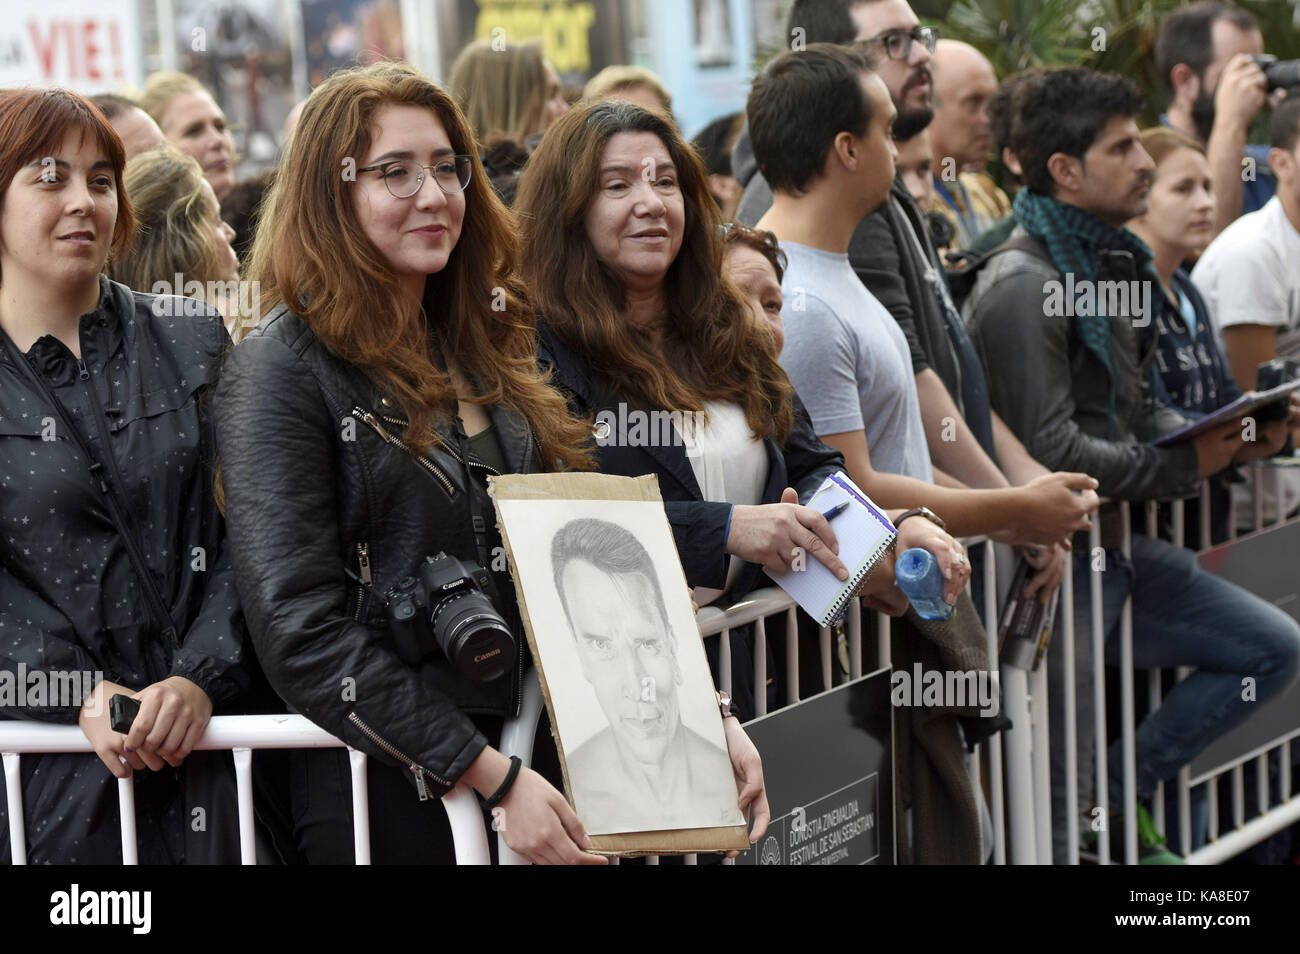 San Sebastian, Spain. 25th Sep, 2017. Fans at the 'Wonder Of The Sea 3D' premiere at the Victoria Eugenia - Stock Image